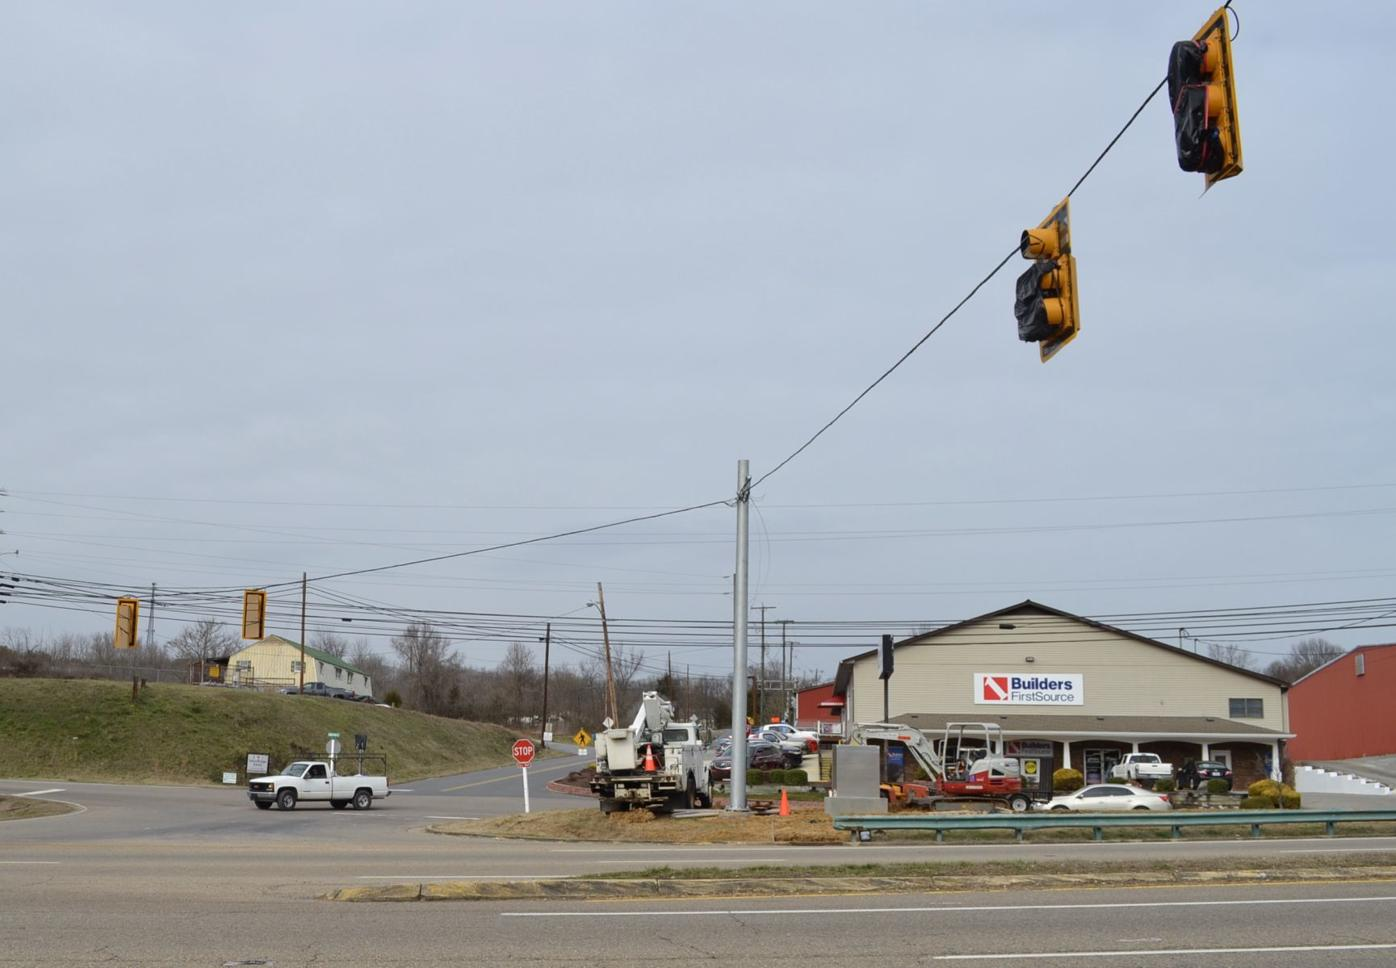 Mount Carmel gets new traffic light at intersection of 11W and Englewood